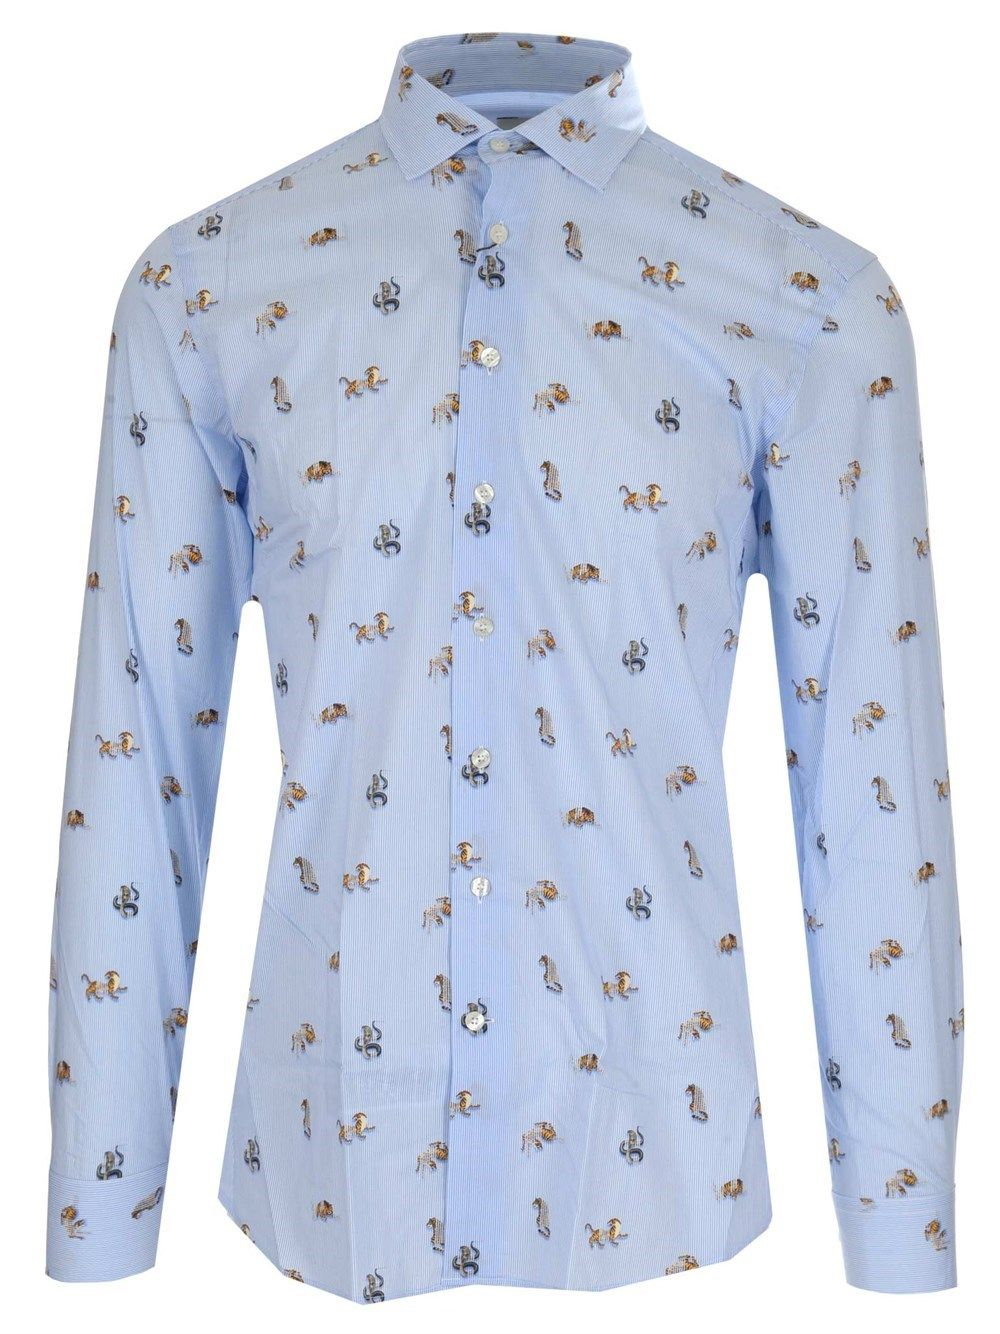 Etro ETRO MEN'S LIGHT BLUE OTHER MATERIALS SHIRT